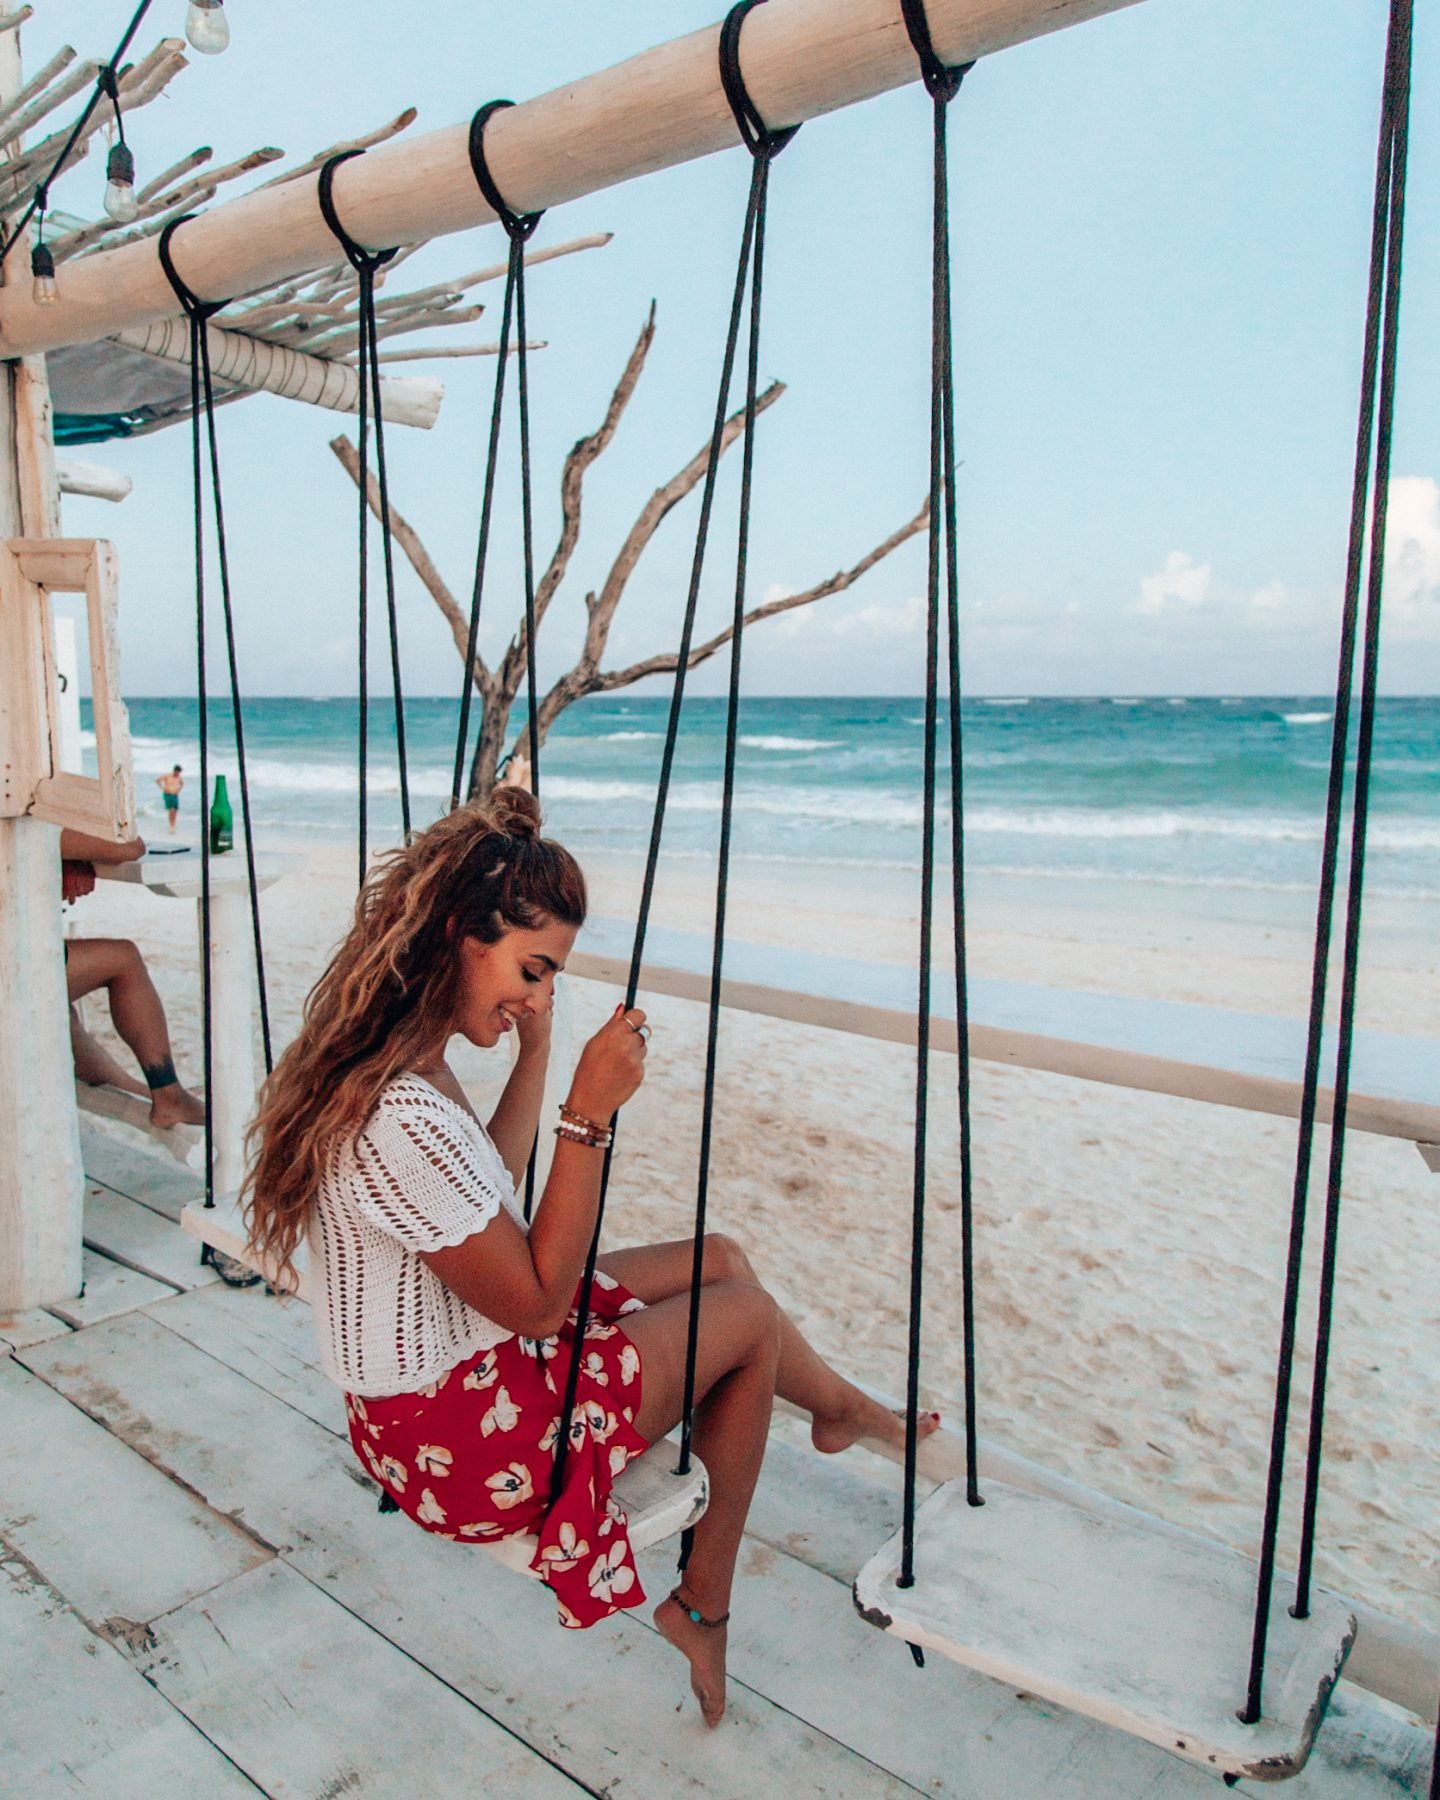 A woman on the white beach swings at Coco Tulum, a beach hotel in Tulum, Mexico